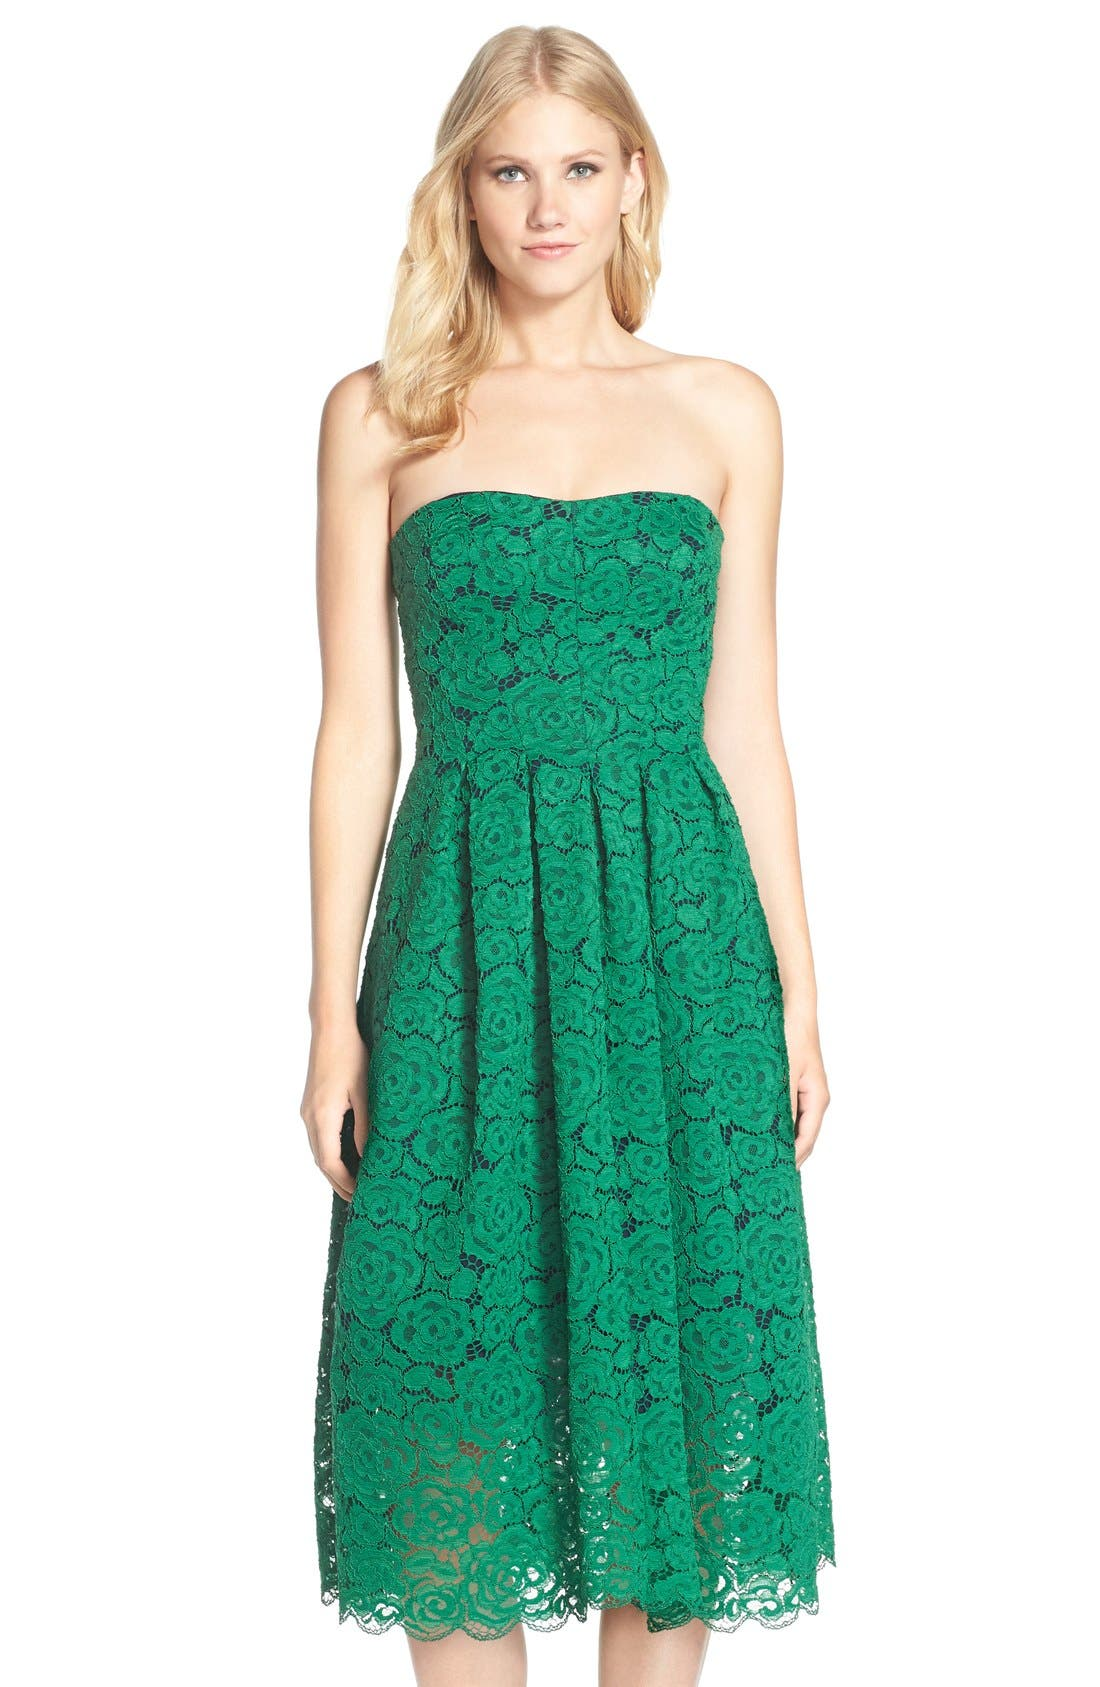 Main Image - Vera Wang Lace Fit & Flare Dress